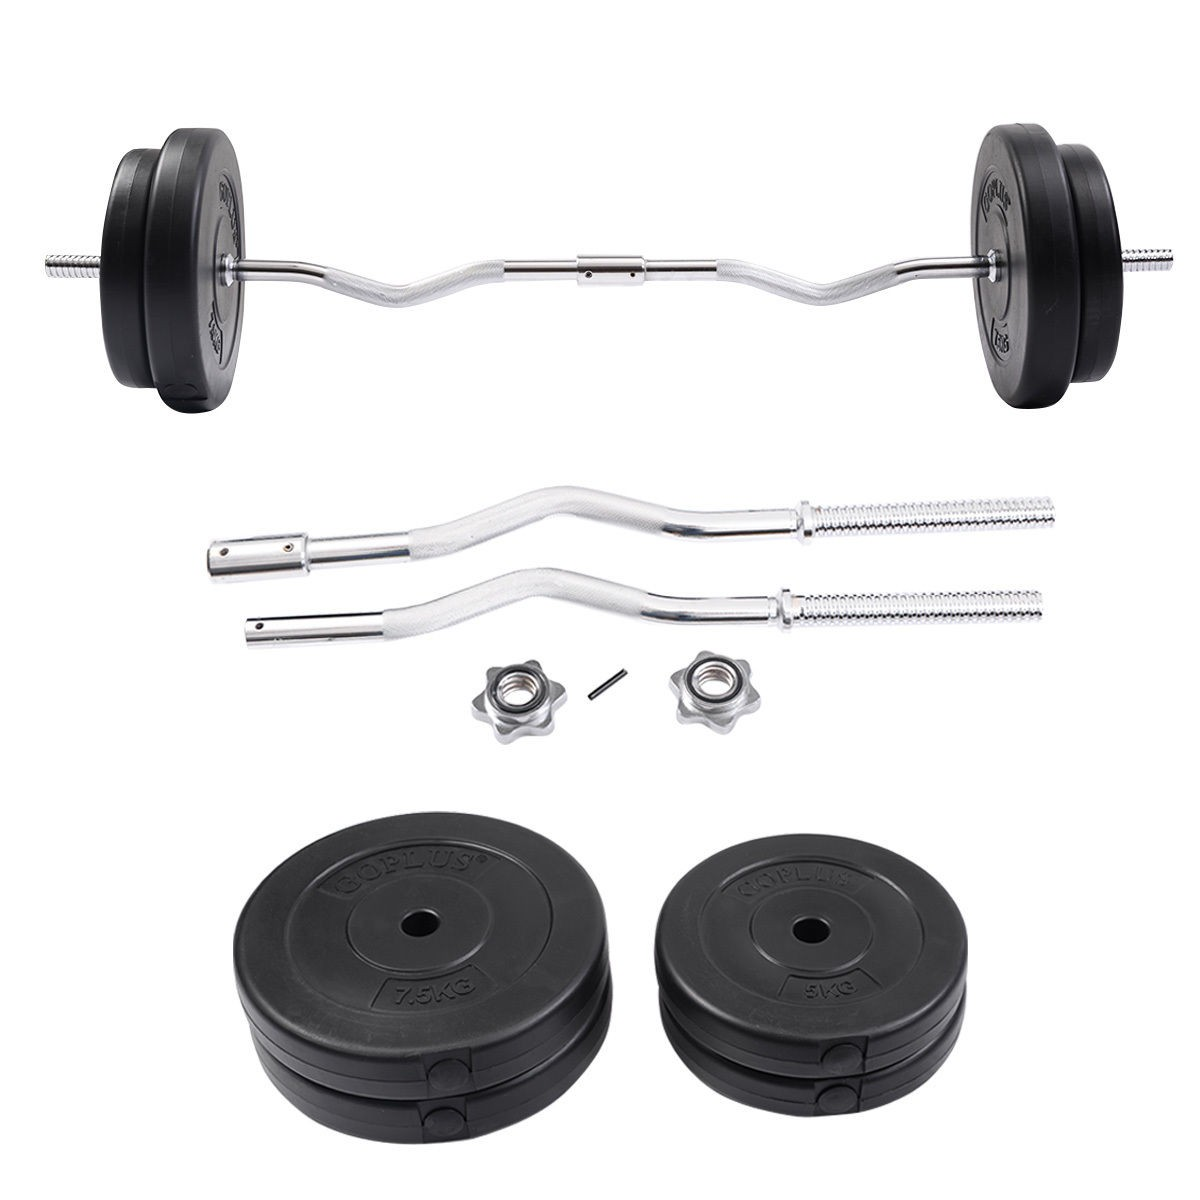 Exercise Barbell Dumbbell: 64 LB Barbell Dumbbell Weight Set Gym Lifting Exercise